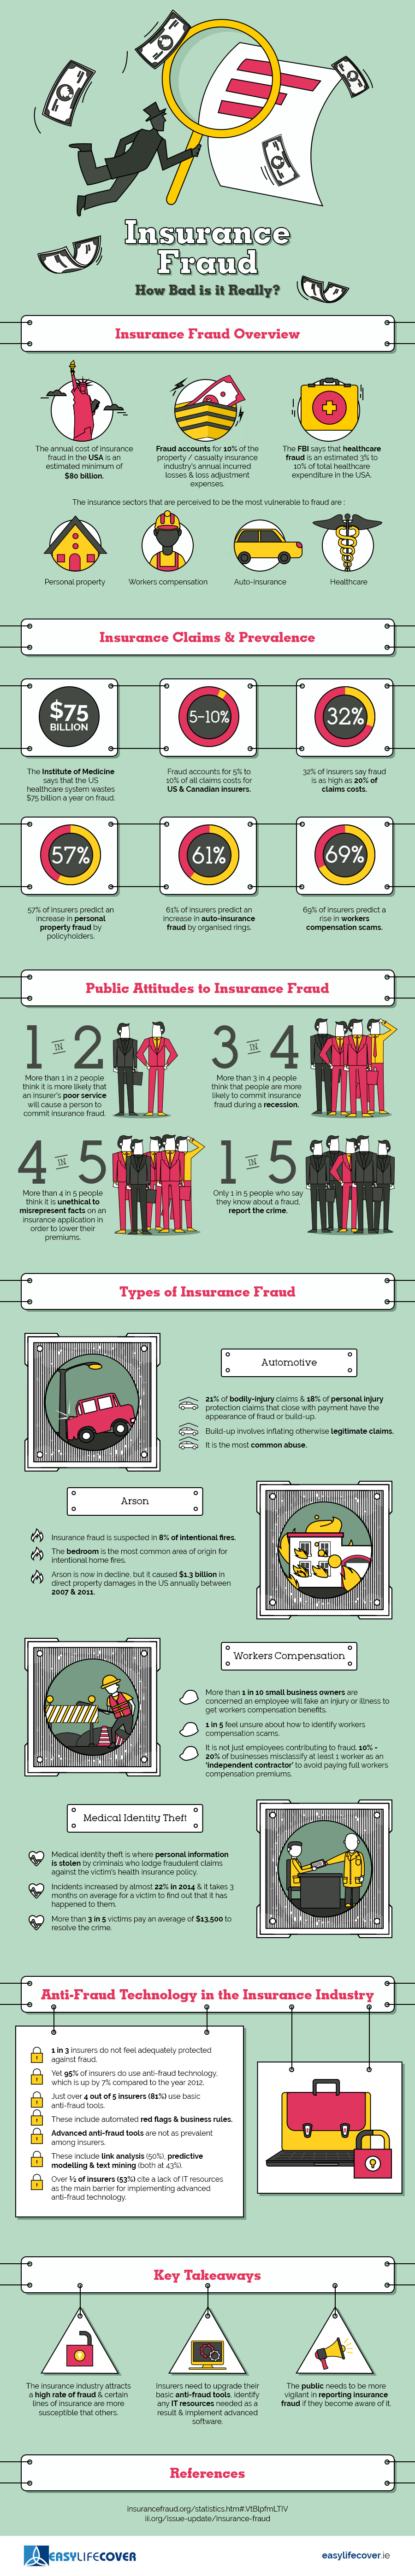 How Bad is Insurance Fraud?